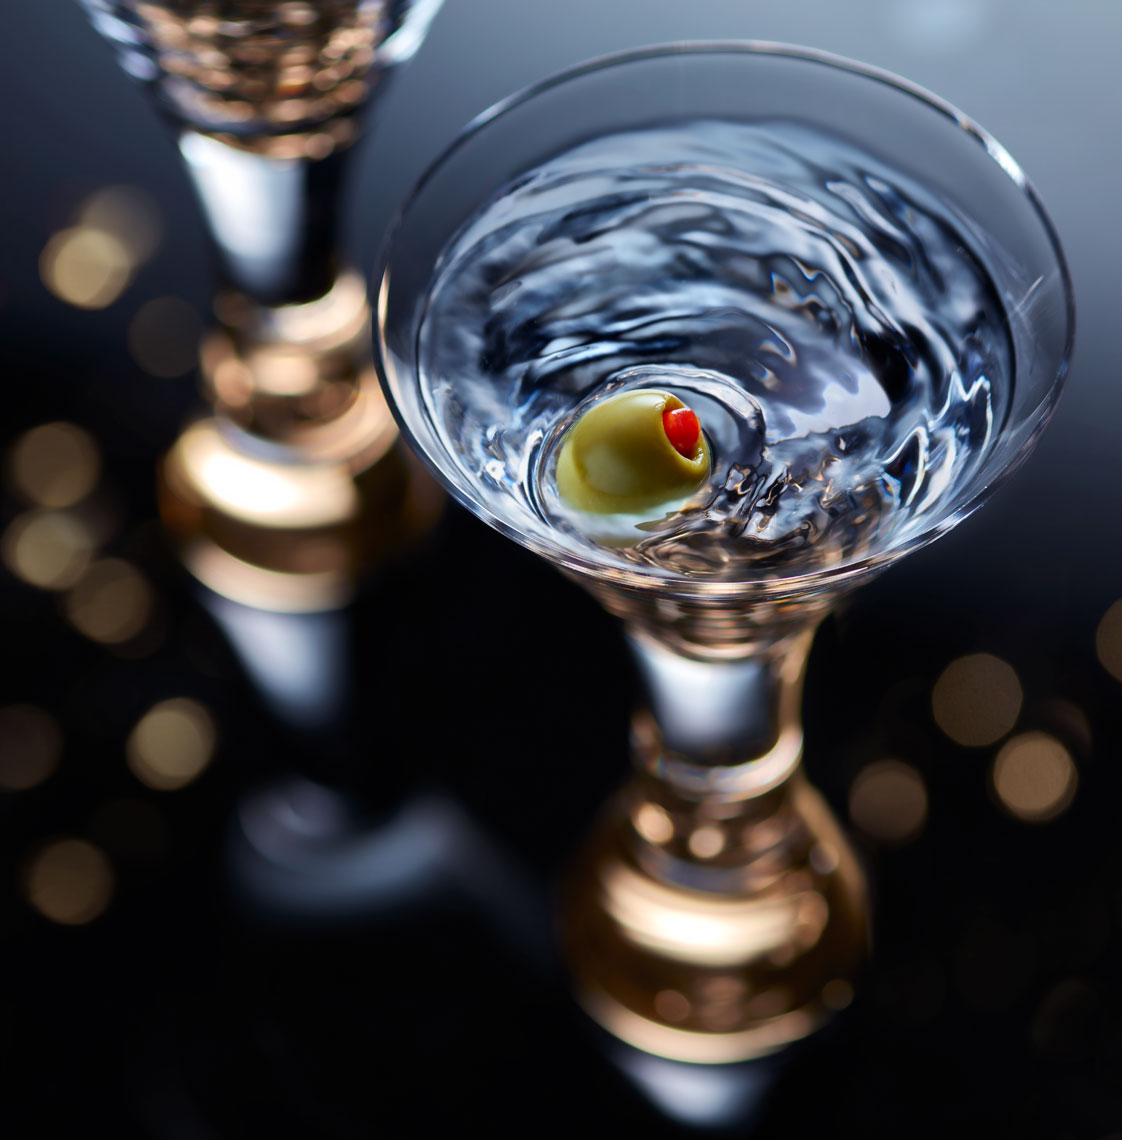 Martini with Olive in Gold Stem Glass- New York Food & Beverage Photographer-© Aristo Studios